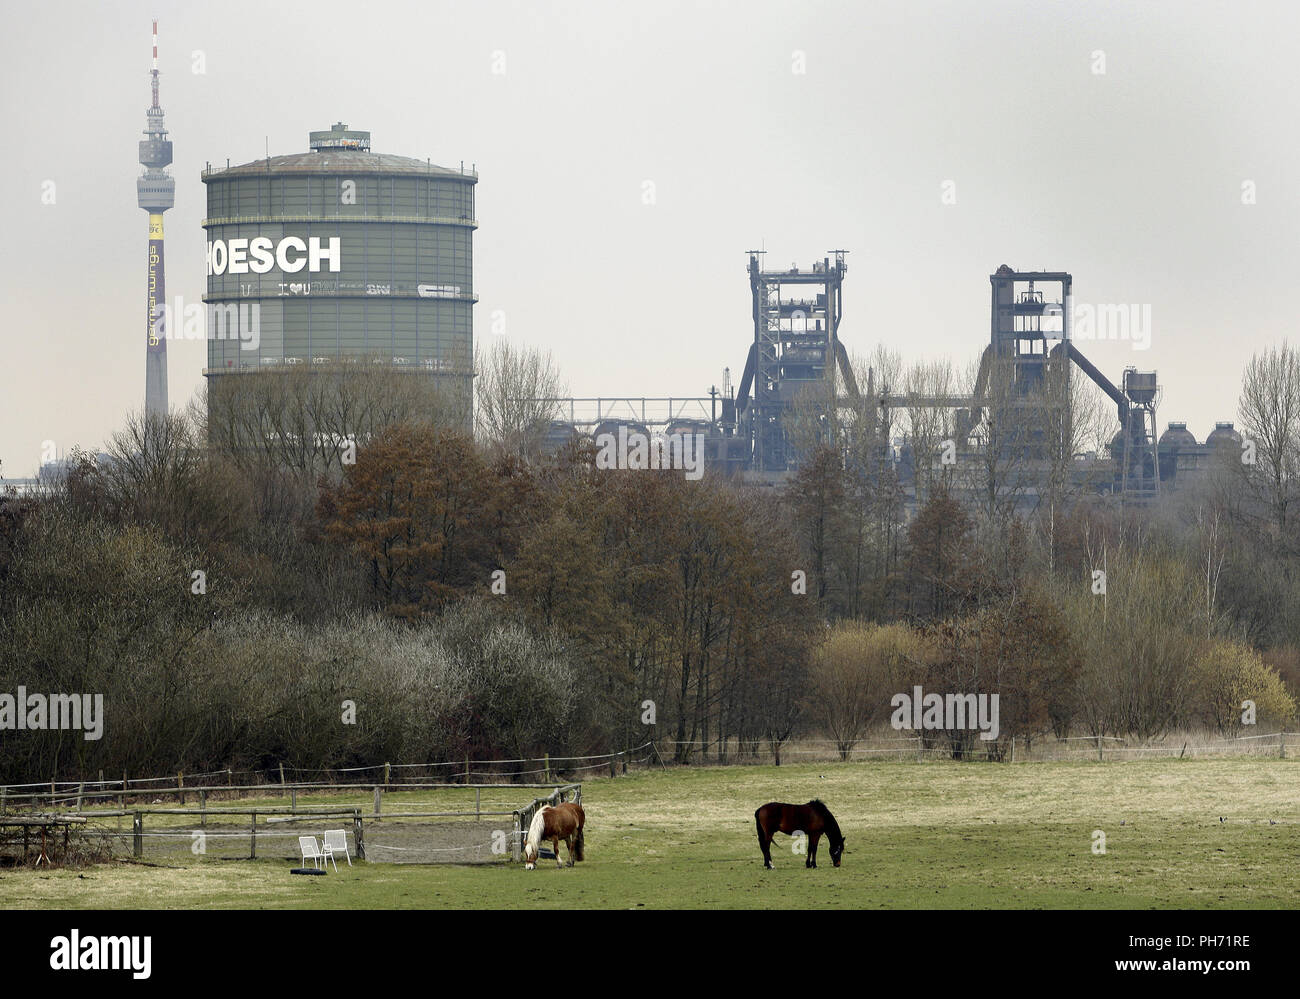 Horses in front of industrial plant, Dortmund. - Stock Image